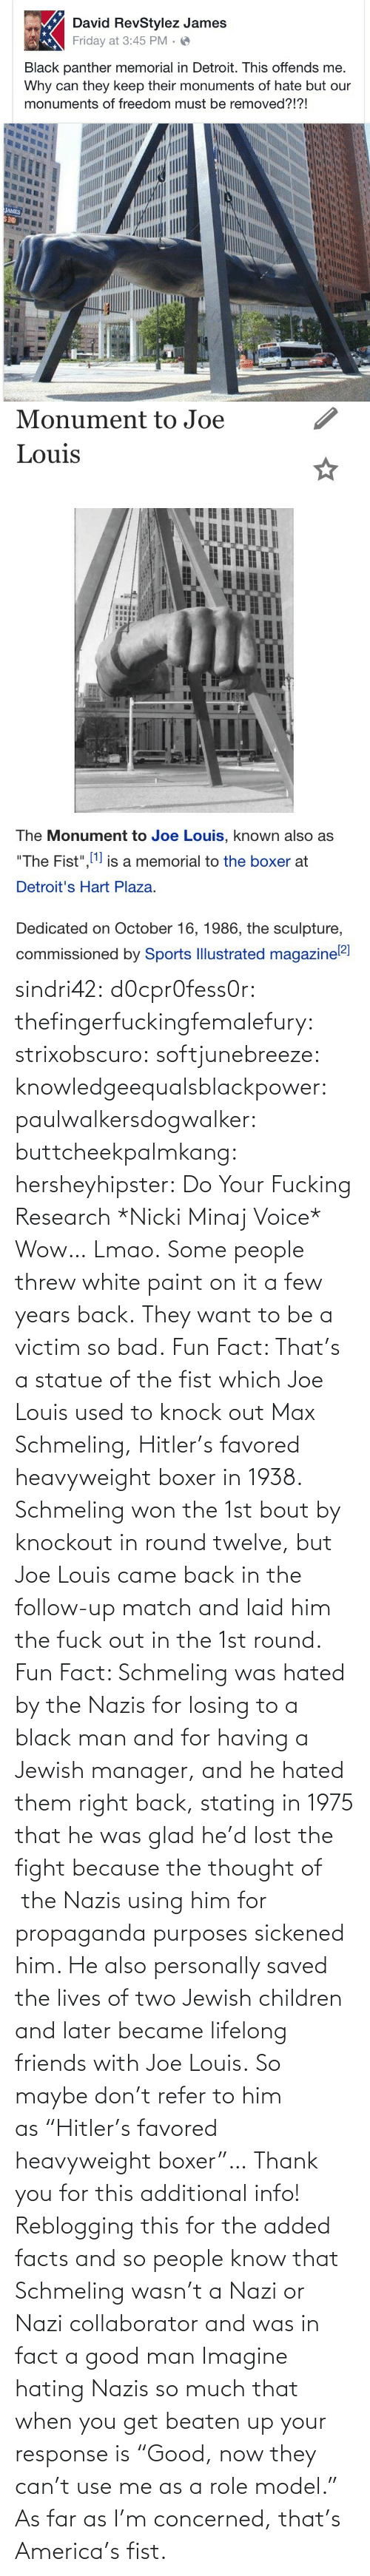 "Also: sindri42:  d0cpr0fess0r:  thefingerfuckingfemalefury:  strixobscuro:  softjunebreeze:  knowledgeequalsblackpower:  paulwalkersdogwalker:   buttcheekpalmkang:   hersheyhipster:  Do Your Fucking Research *Nicki Minaj Voice*    Wow… Lmao.   Some people threw white paint on it a few years back.   They want to be a victim so bad.  Fun Fact: That's a statue of the fist which Joe Louis used to knock out Max Schmeling, Hitler's favored heavyweight boxer in 1938. Schmeling won the 1st bout by knockout in round twelve, but Joe Louis came back in the follow-up match and laid him the fuck out in the 1st round.  Fun Fact: Schmeling was hated by the Nazis for losing to a black man and for having a Jewish manager, and he hated them right back, stating in 1975 that he was glad he'd lost the fight because the thought of  the Nazis using him for propaganda purposes sickened him. He also personally saved the lives of two Jewish children and later became lifelong friends with Joe Louis. So maybe don't refer to him as ""Hitler's favored heavyweight boxer""…  Thank you for this additional info! Reblogging this for the added facts and so people know that Schmeling wasn't a Nazi or Nazi collaborator and was in fact a good man   Imagine hating Nazis so much that when you get beaten up your response is ""Good, now they can't use me as a role model.""  As far as I'm concerned, that's America's fist."